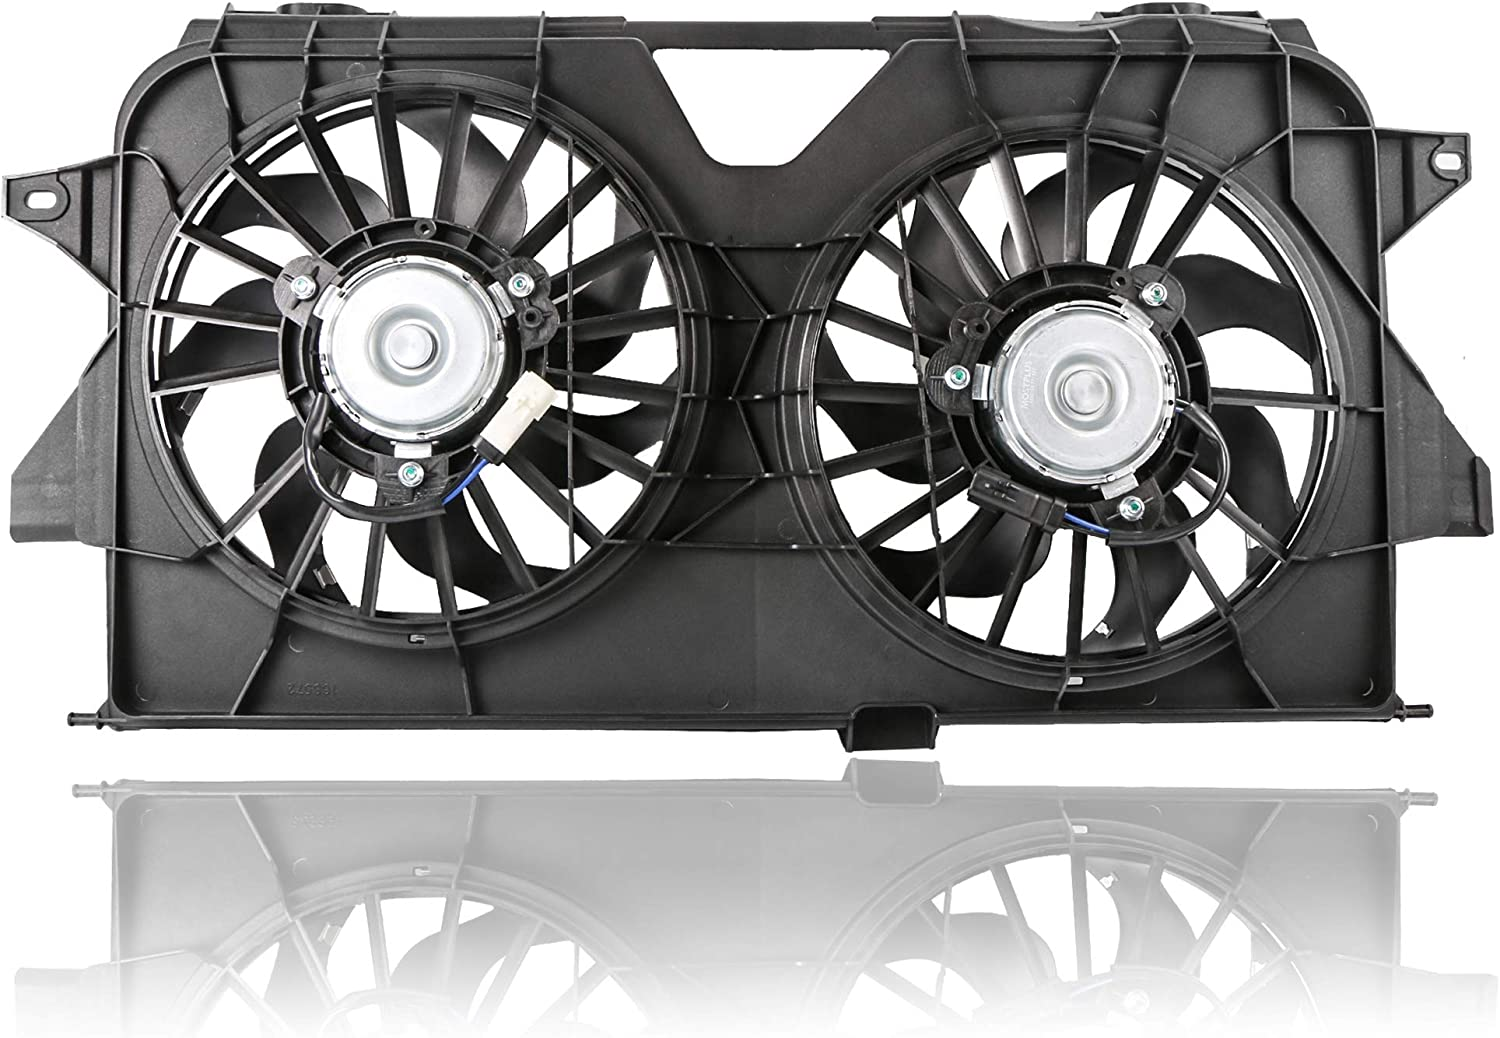 MOSTPLUS Black Dual Radiator Cooling Fan Assembly 4677695AB CH3115145 Compatible with 2005-2007 Chrysler Town & Country/Dodge Grand Caravan